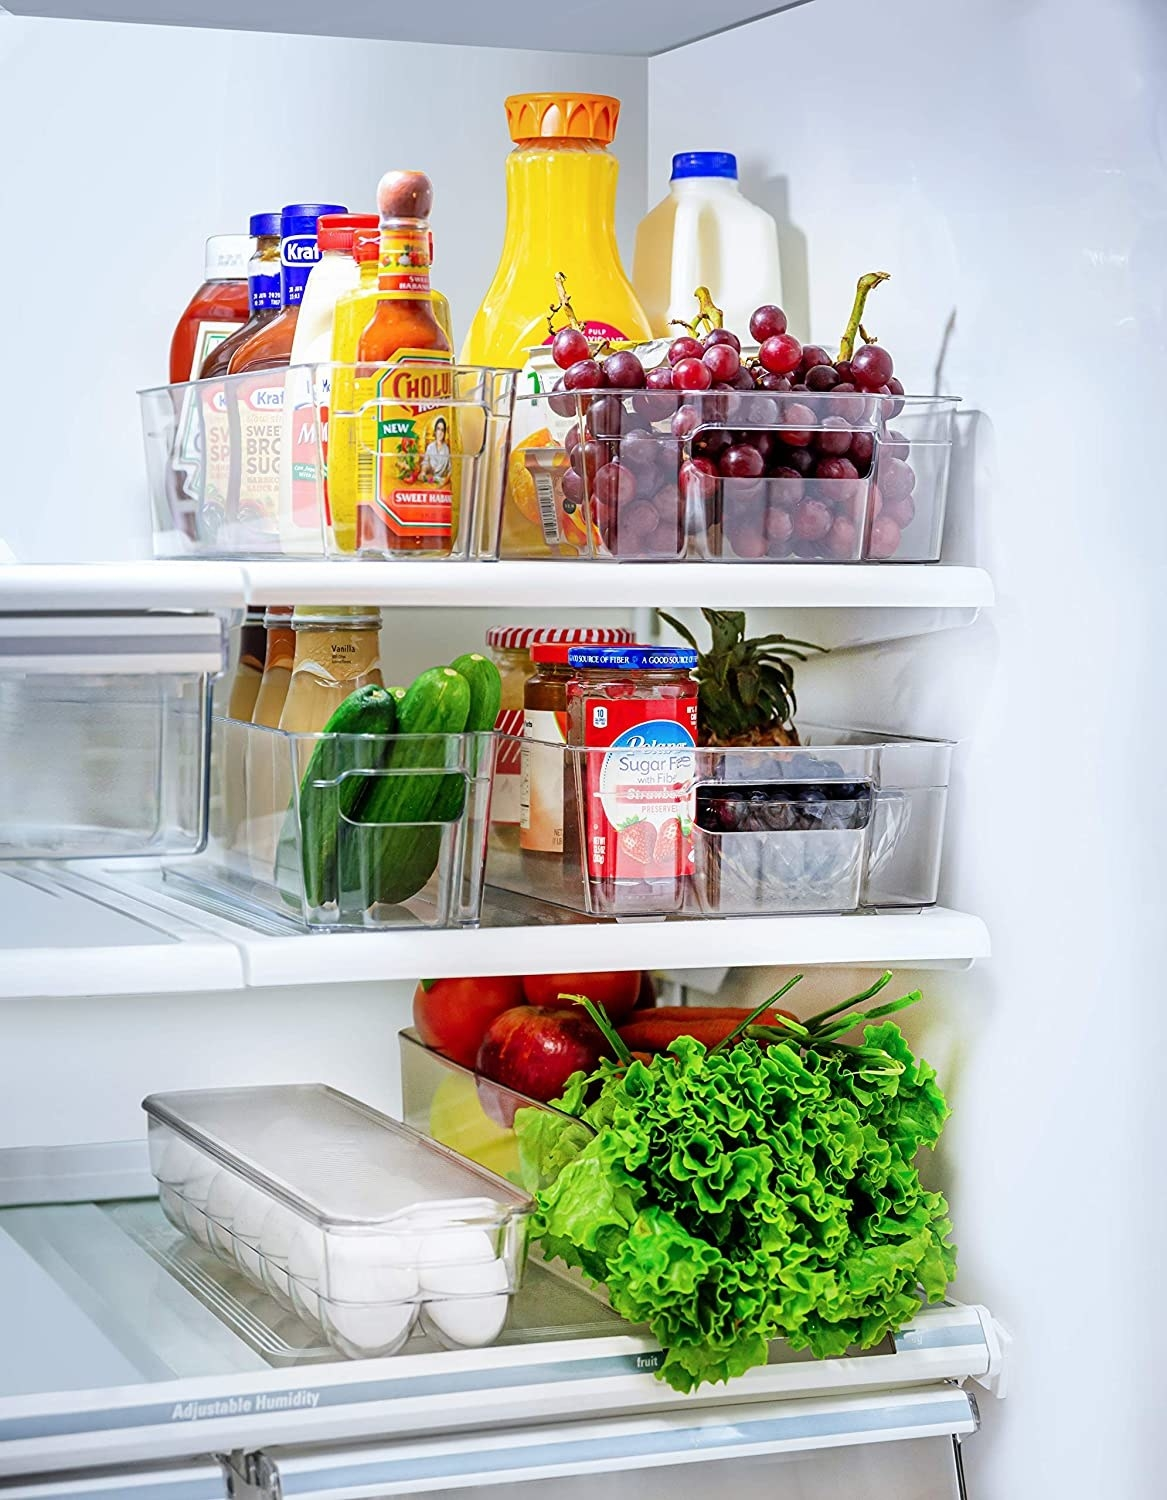 produce, eggs, sauces, and juices in storage bins in the fridge